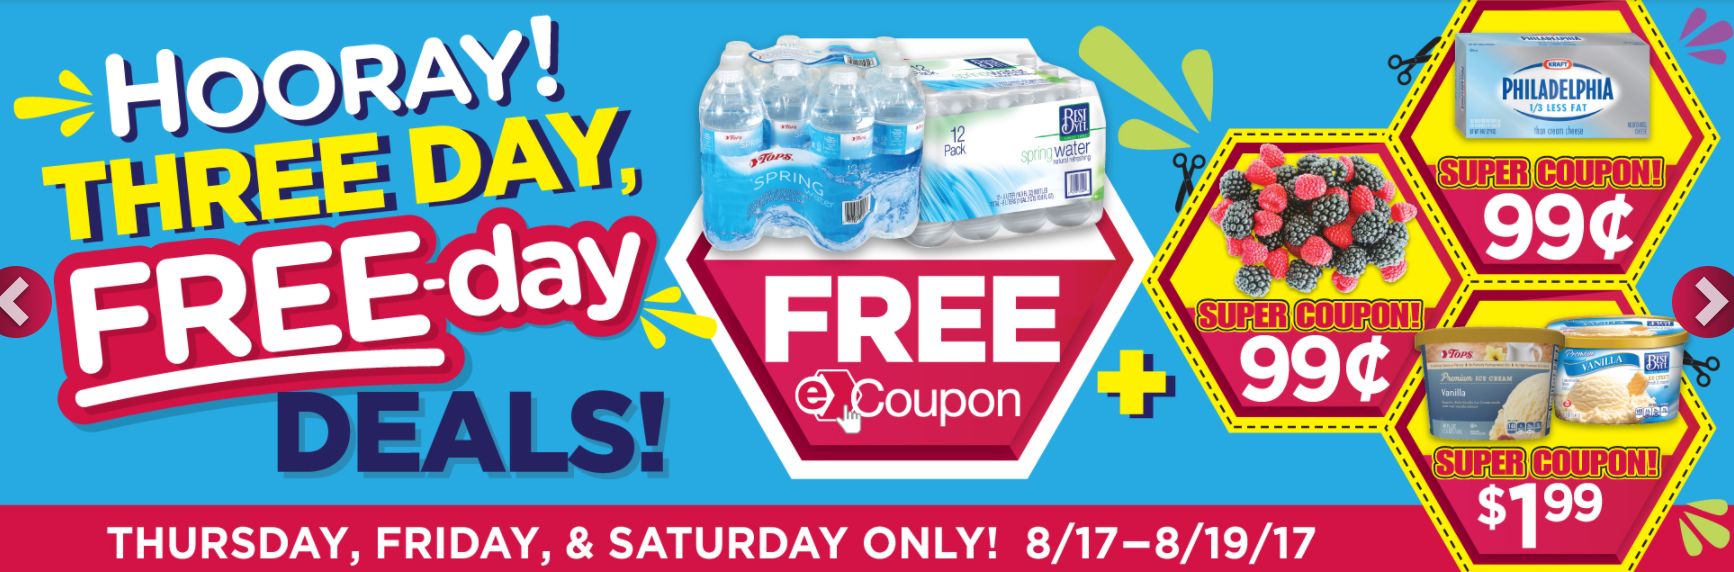 Tops E Coupons: This weeks Three Day Free-Day deals->FREE 12 pk Water plus $.99 Berries, $.99 Cream Cheese, and $1.99 Ice Cream